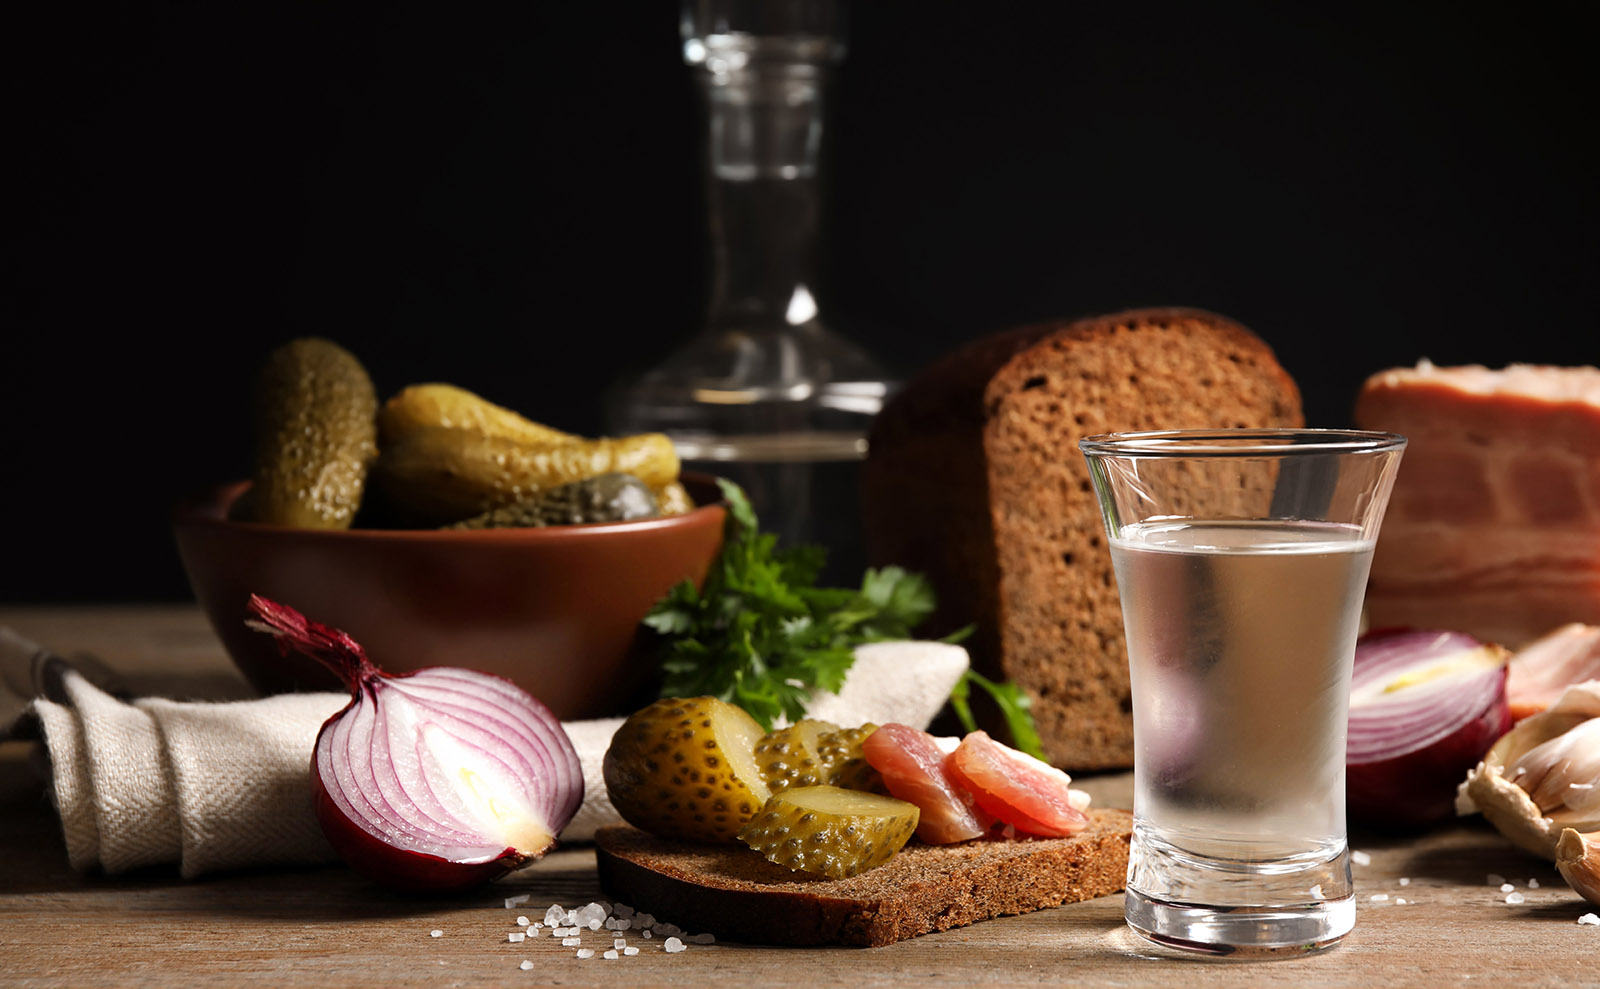 wooden table set with vodka, brown bread, meat, and pickles